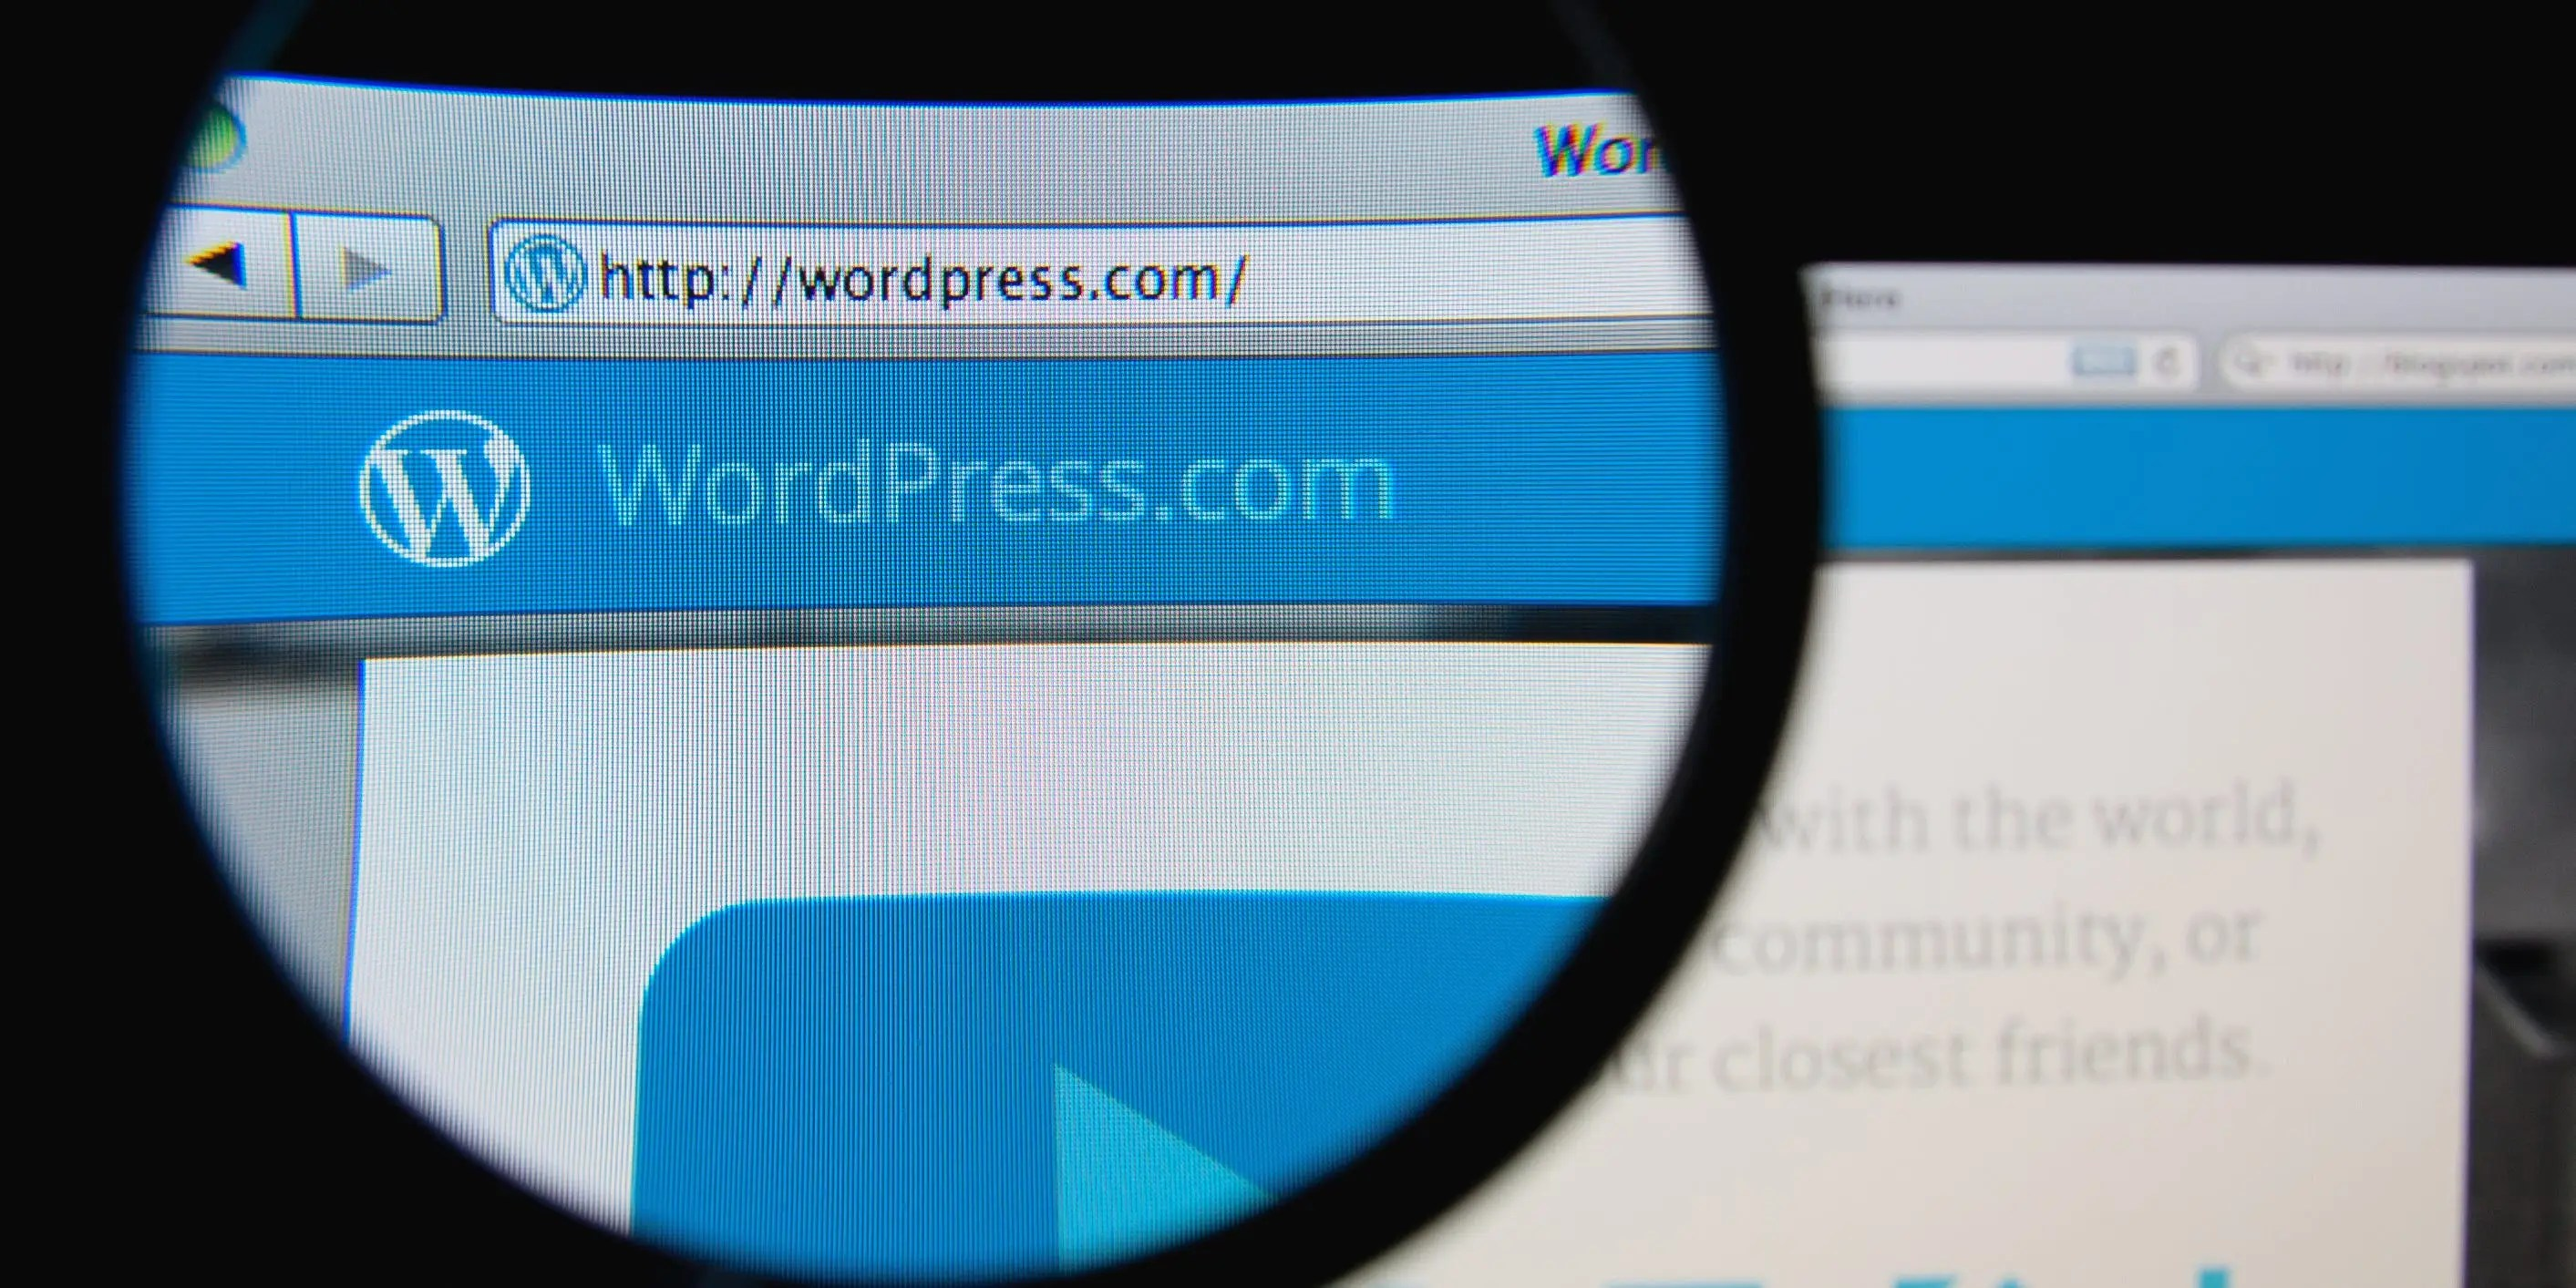 A quick guide to WordPress, the free-to-use website builder that powers some of the web's most popular sites - Business Insider